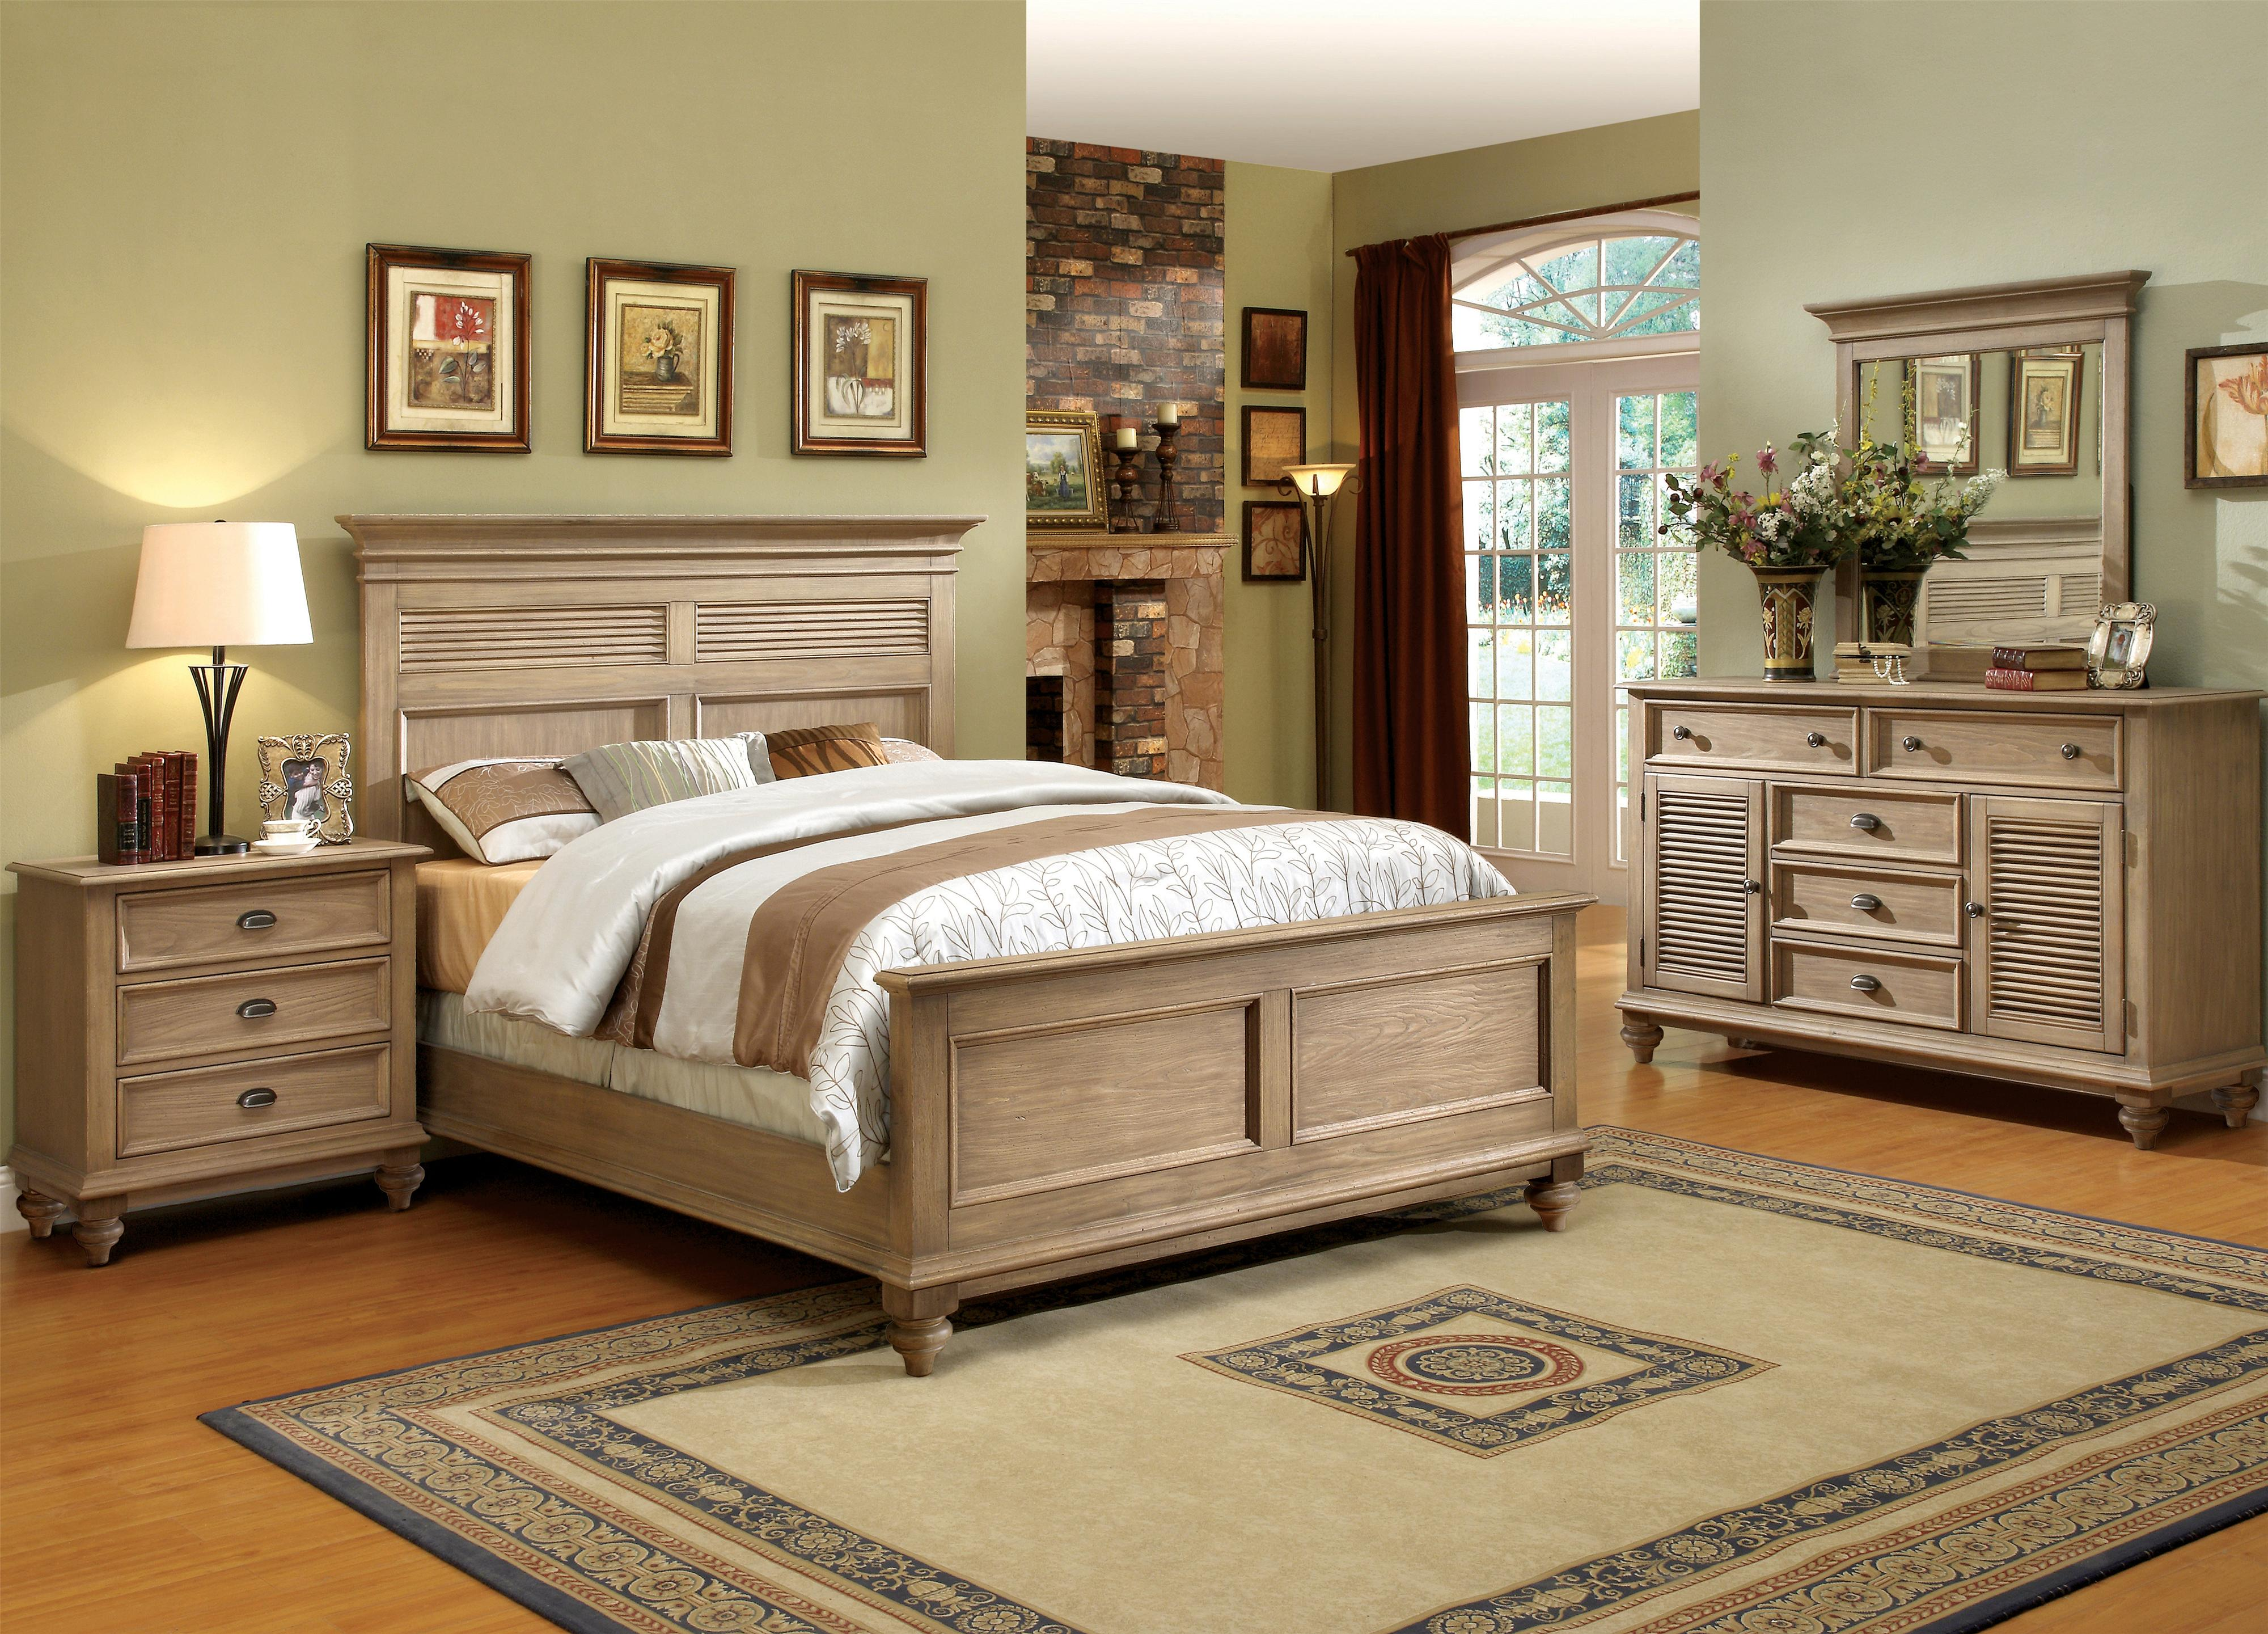 Riverside Furniture Coventry Full/Queen Bedroom Group - Item Number: 32400 F Q Bedroom Group 4